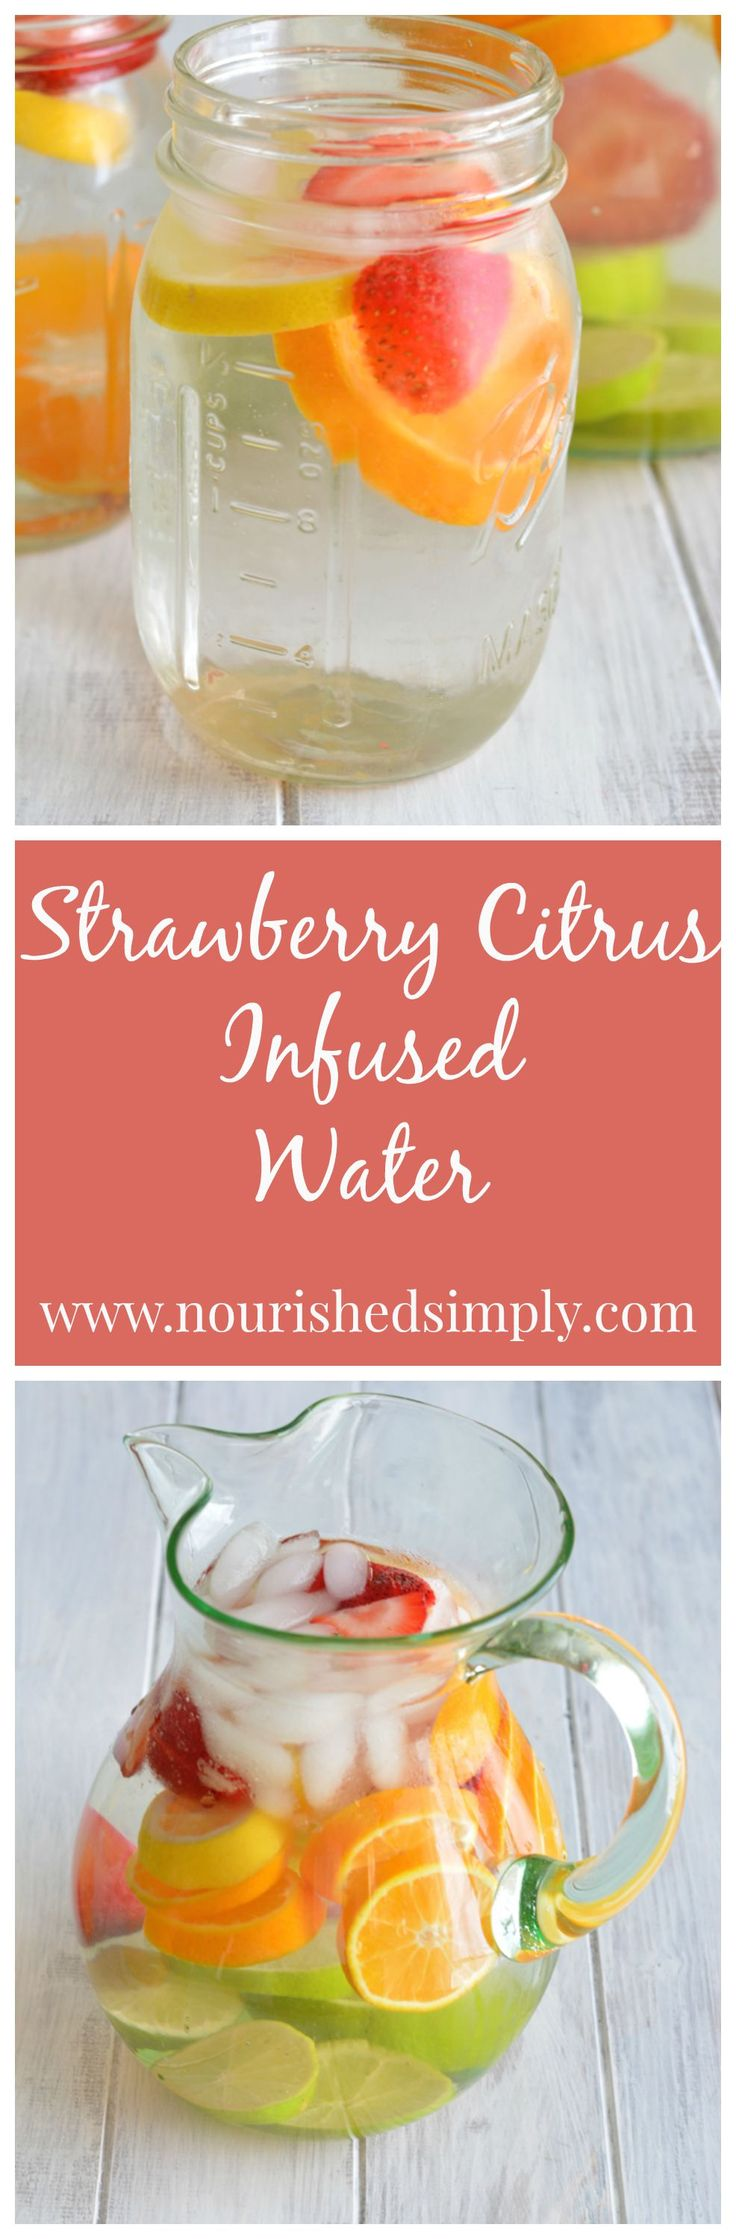 Strawberry Citrus Infused Water - a great tasting way to jazz up water.